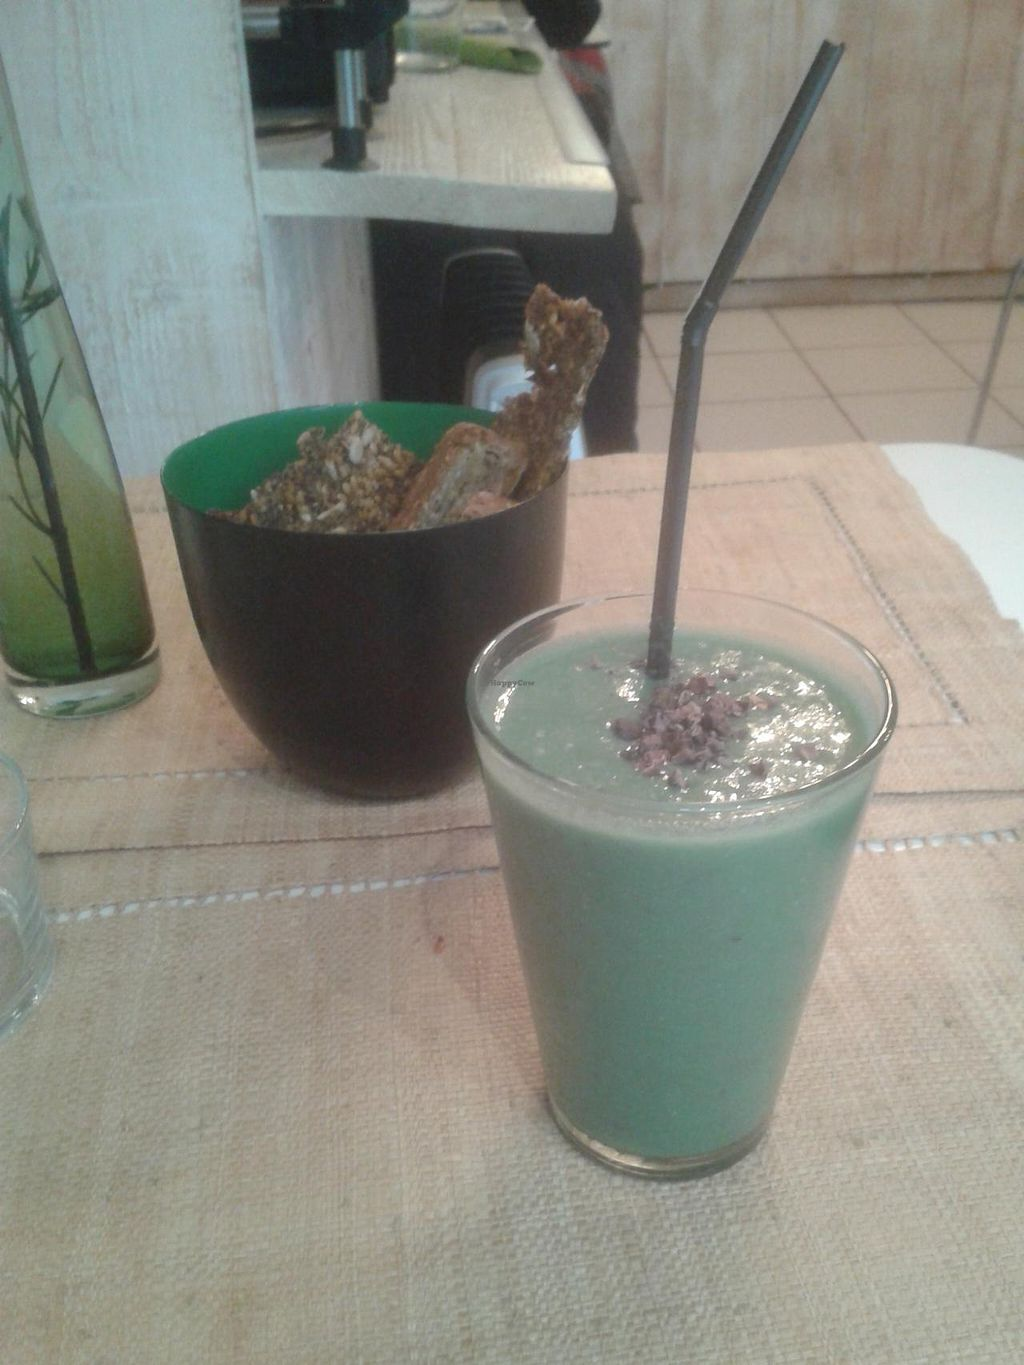 """Photo of CLOSED: Pousse-Pousse  by <a href=""""/members/profile/JonJon"""">JonJon</a> <br/>Banana and spirulina smoothie <br/> January 15, 2014  - <a href='/contact/abuse/image/17084/62567'>Report</a>"""